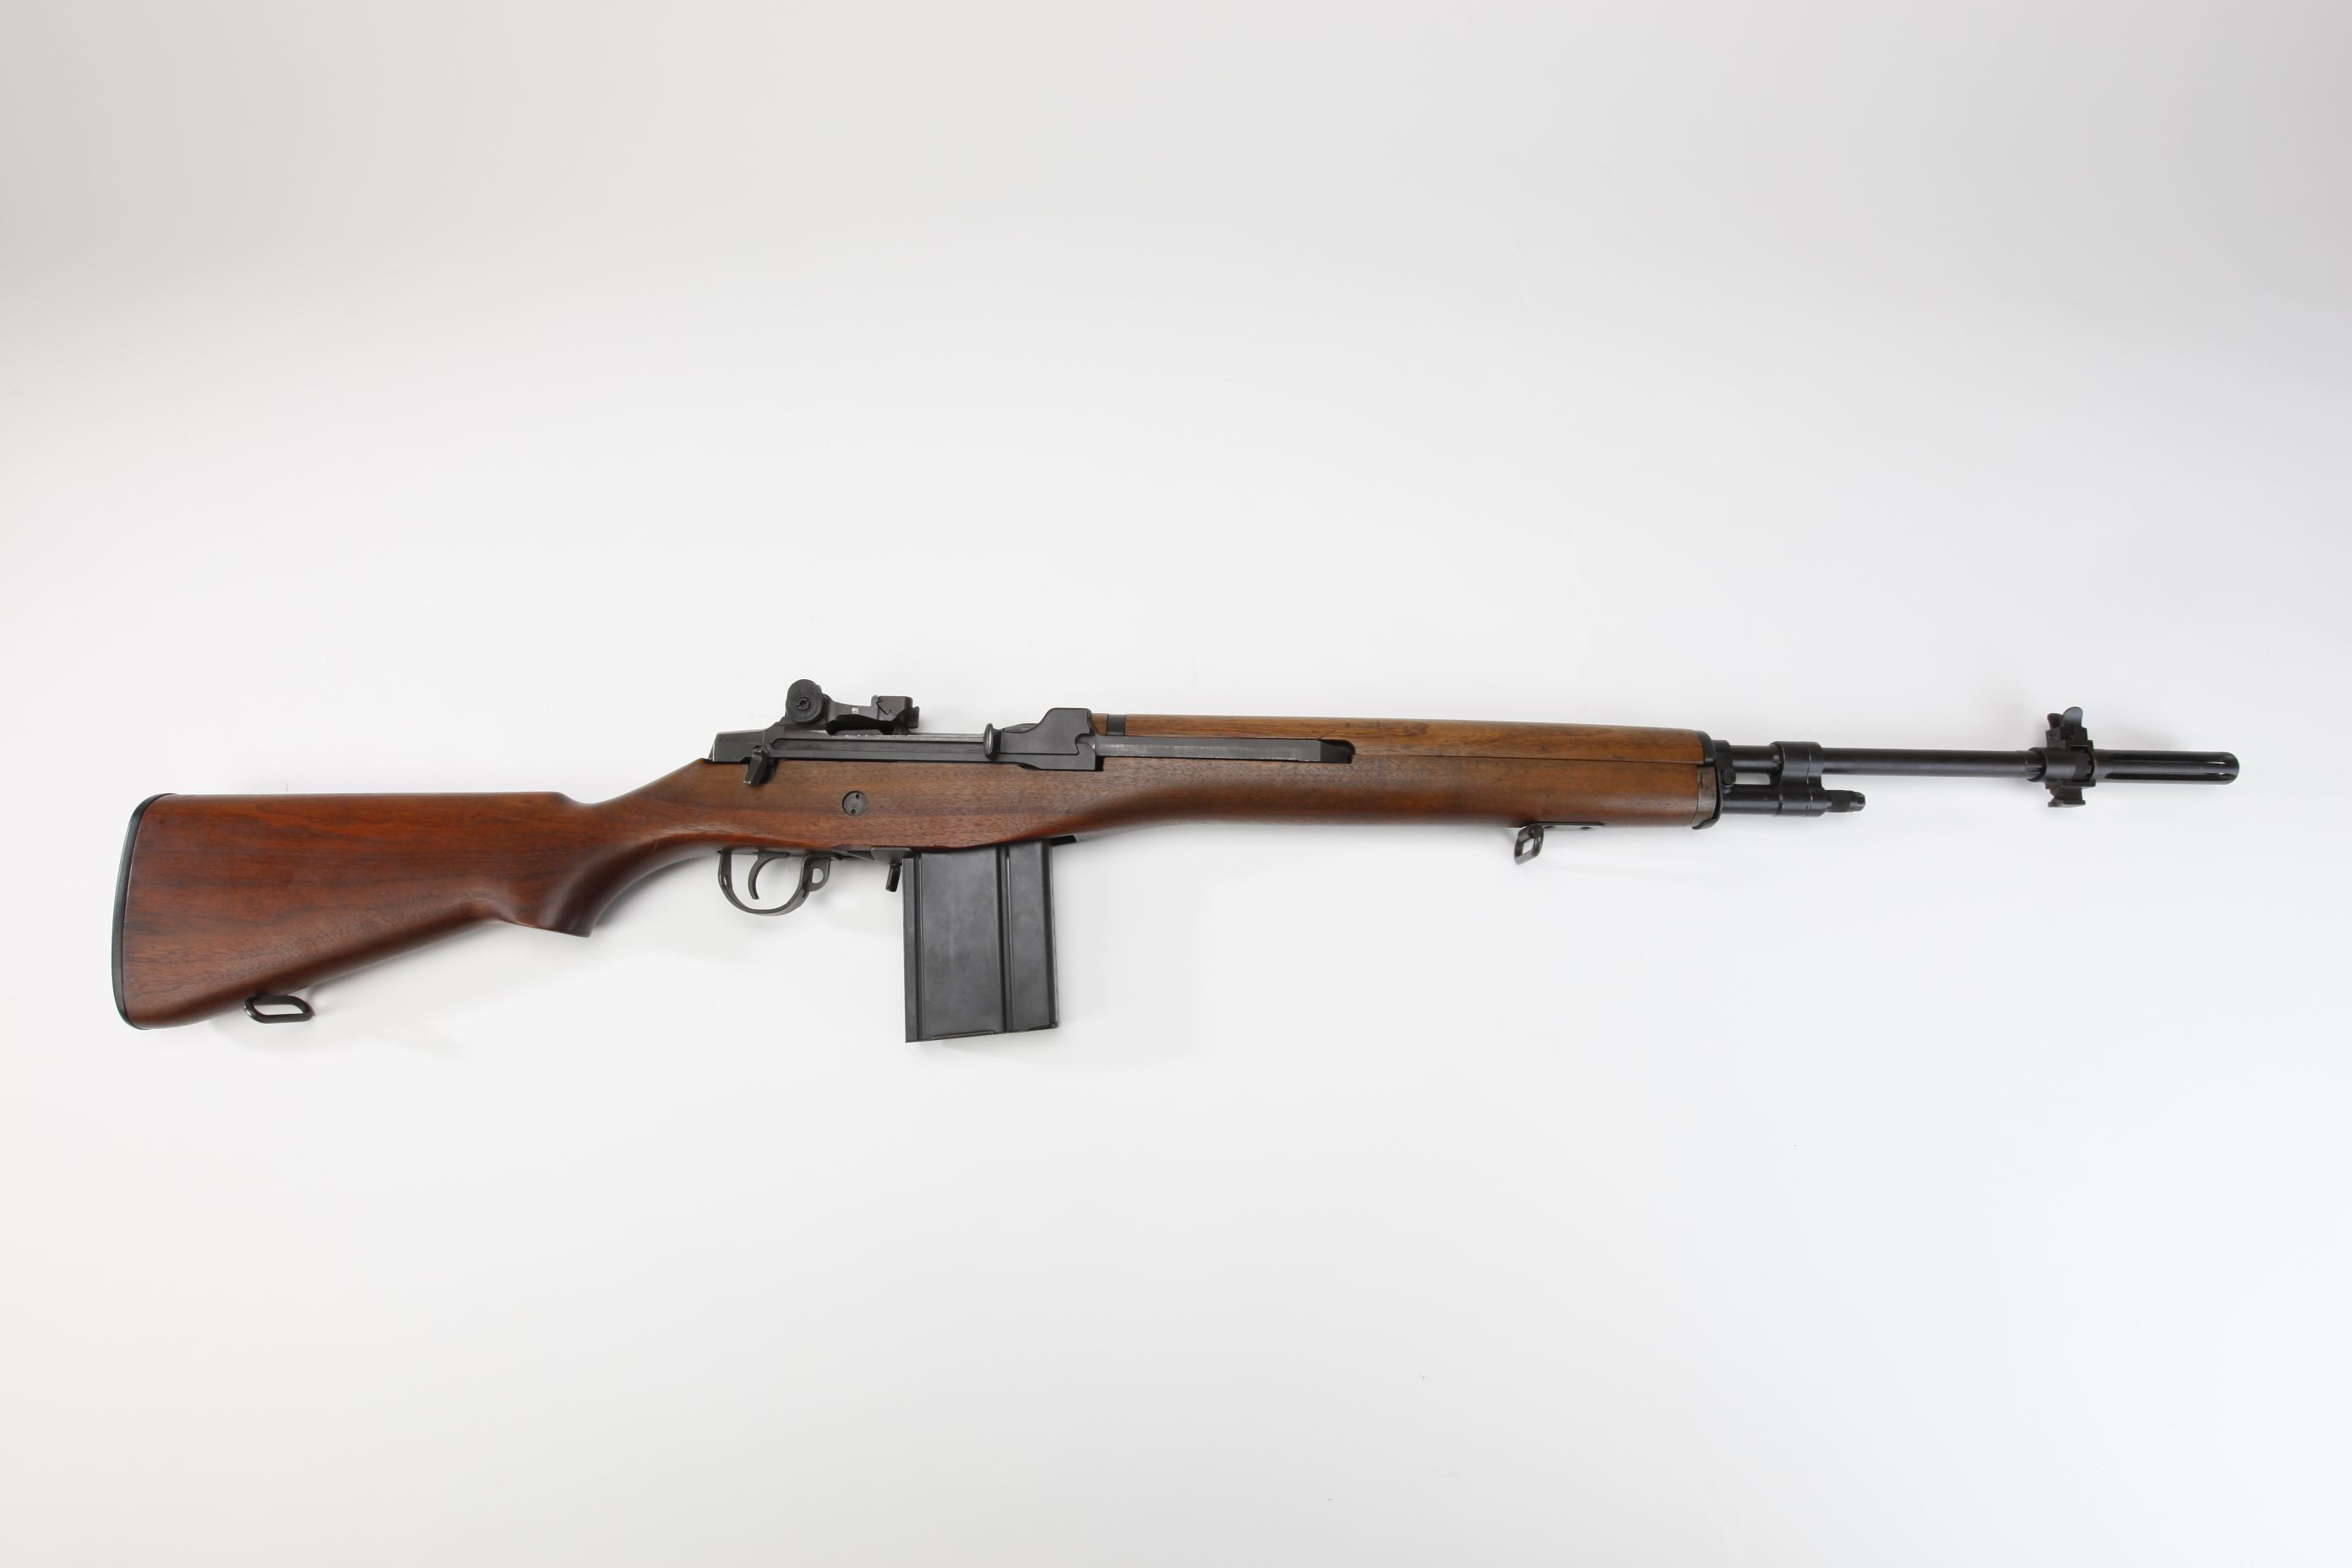 U.S. Springfield Model T44 E4 Selective Fire Rifle